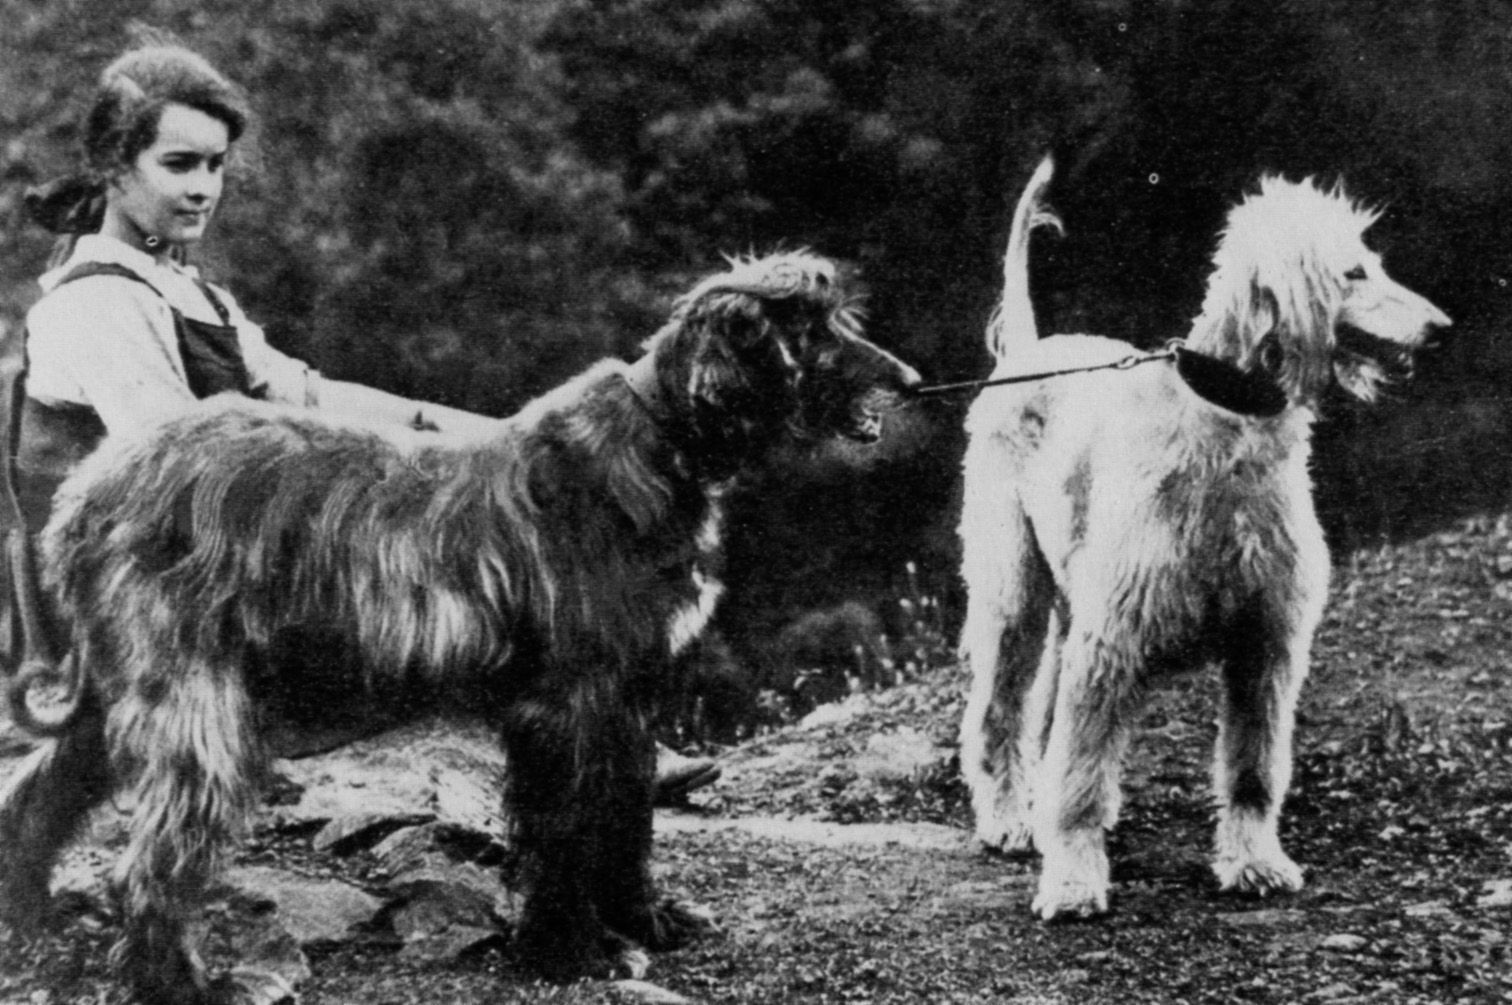 Old Black And White Photography Old Black And White Afghan Hound Photo And Wallpaper Beautiful Old Afghan Hound Hound Dog People